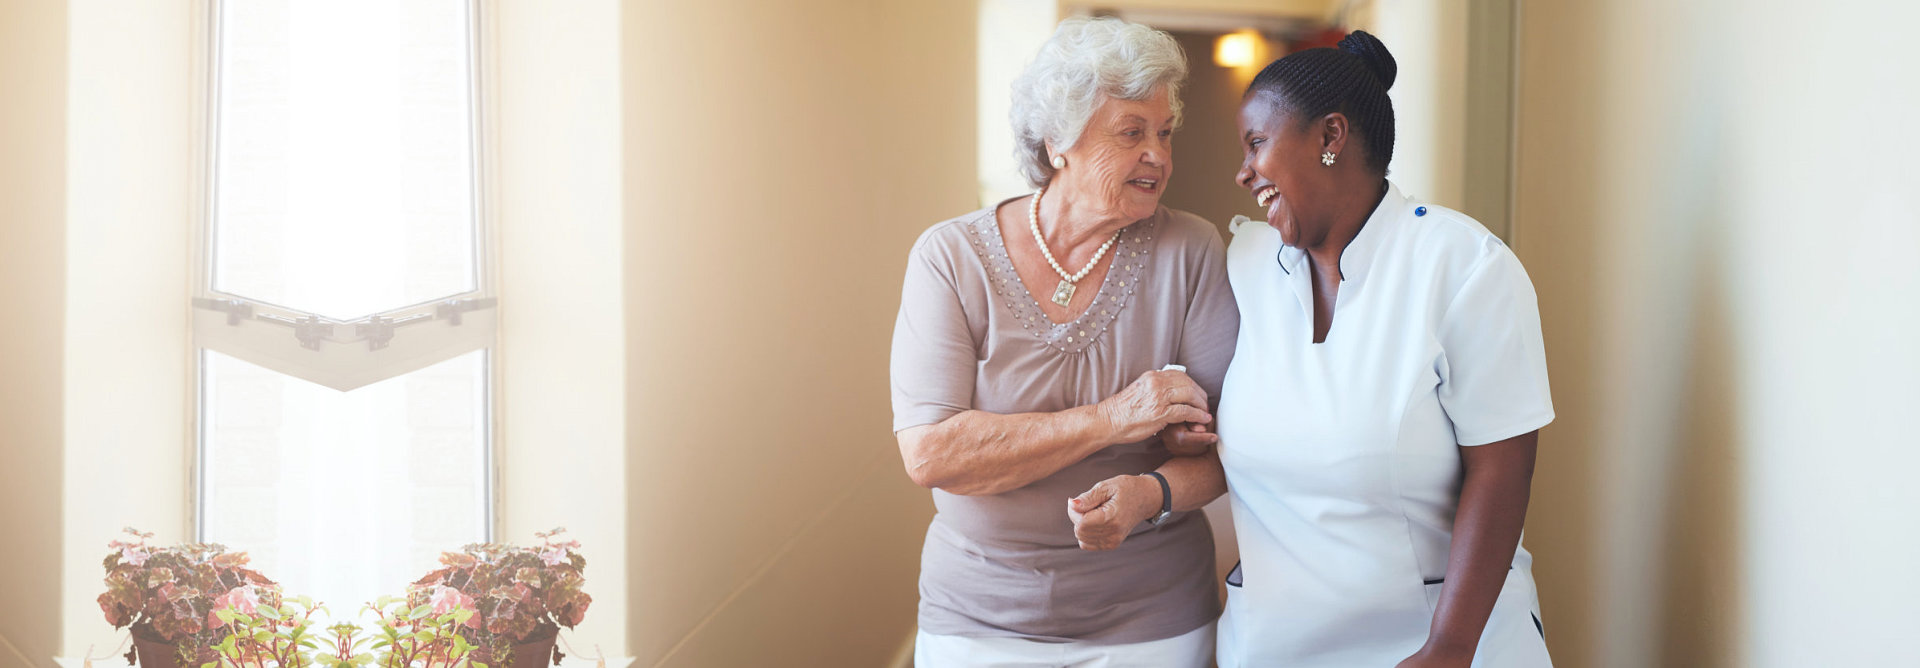 caregiver and old woman happily walking in the aisle